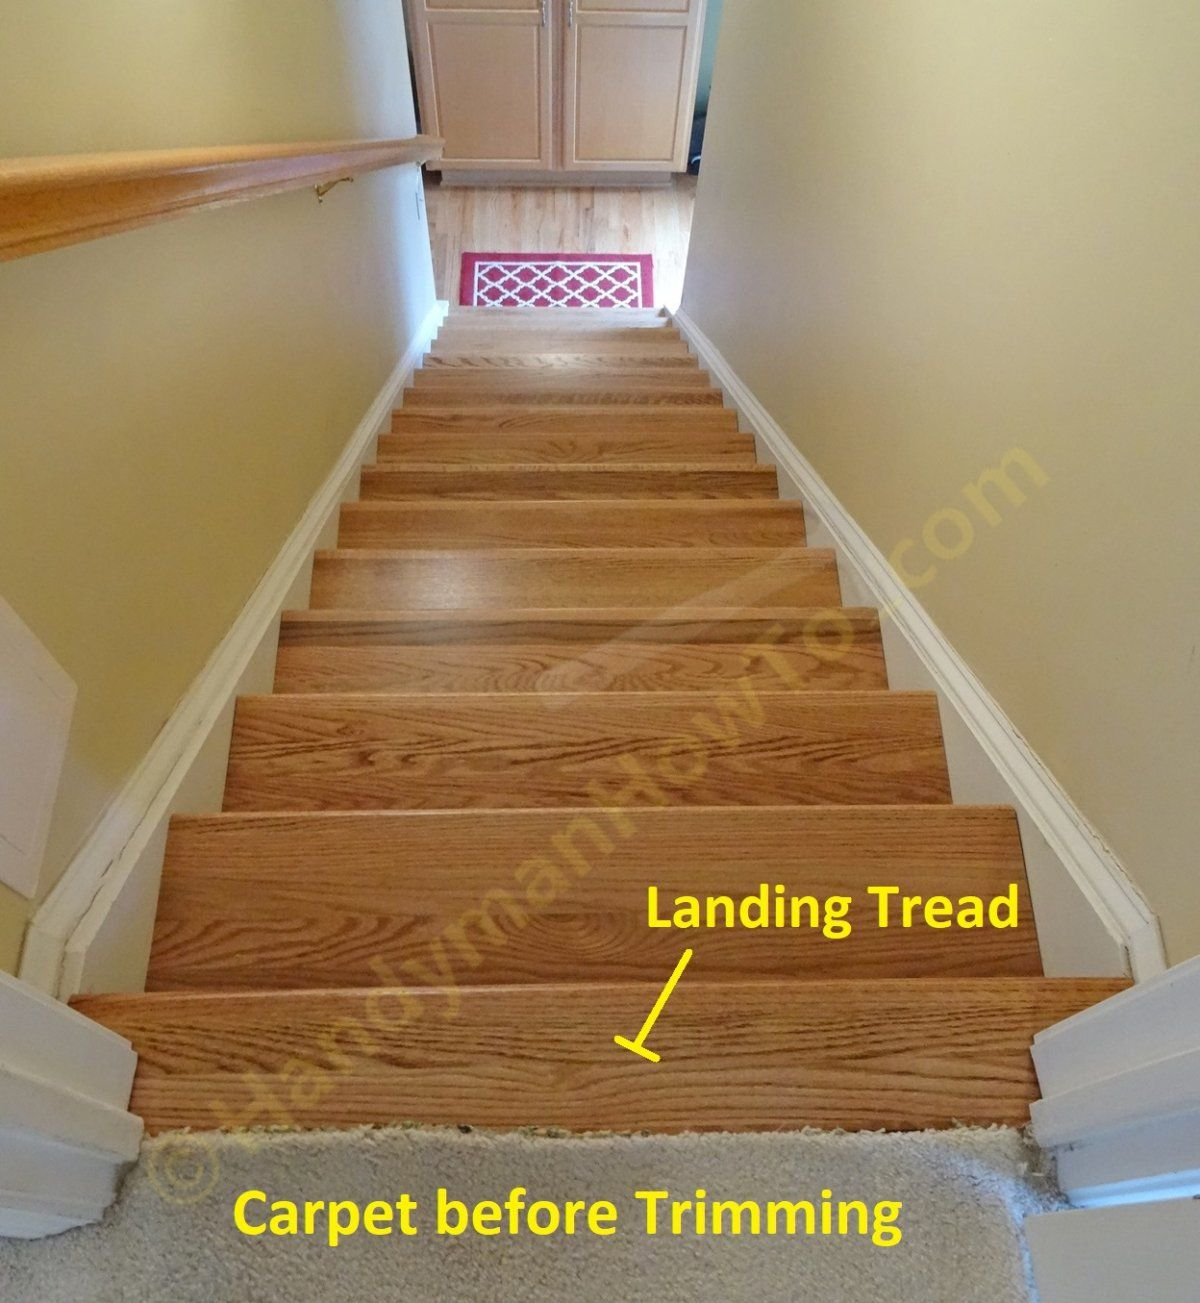 Young Retrotread Installation Carpet Fitting At Stair Landing